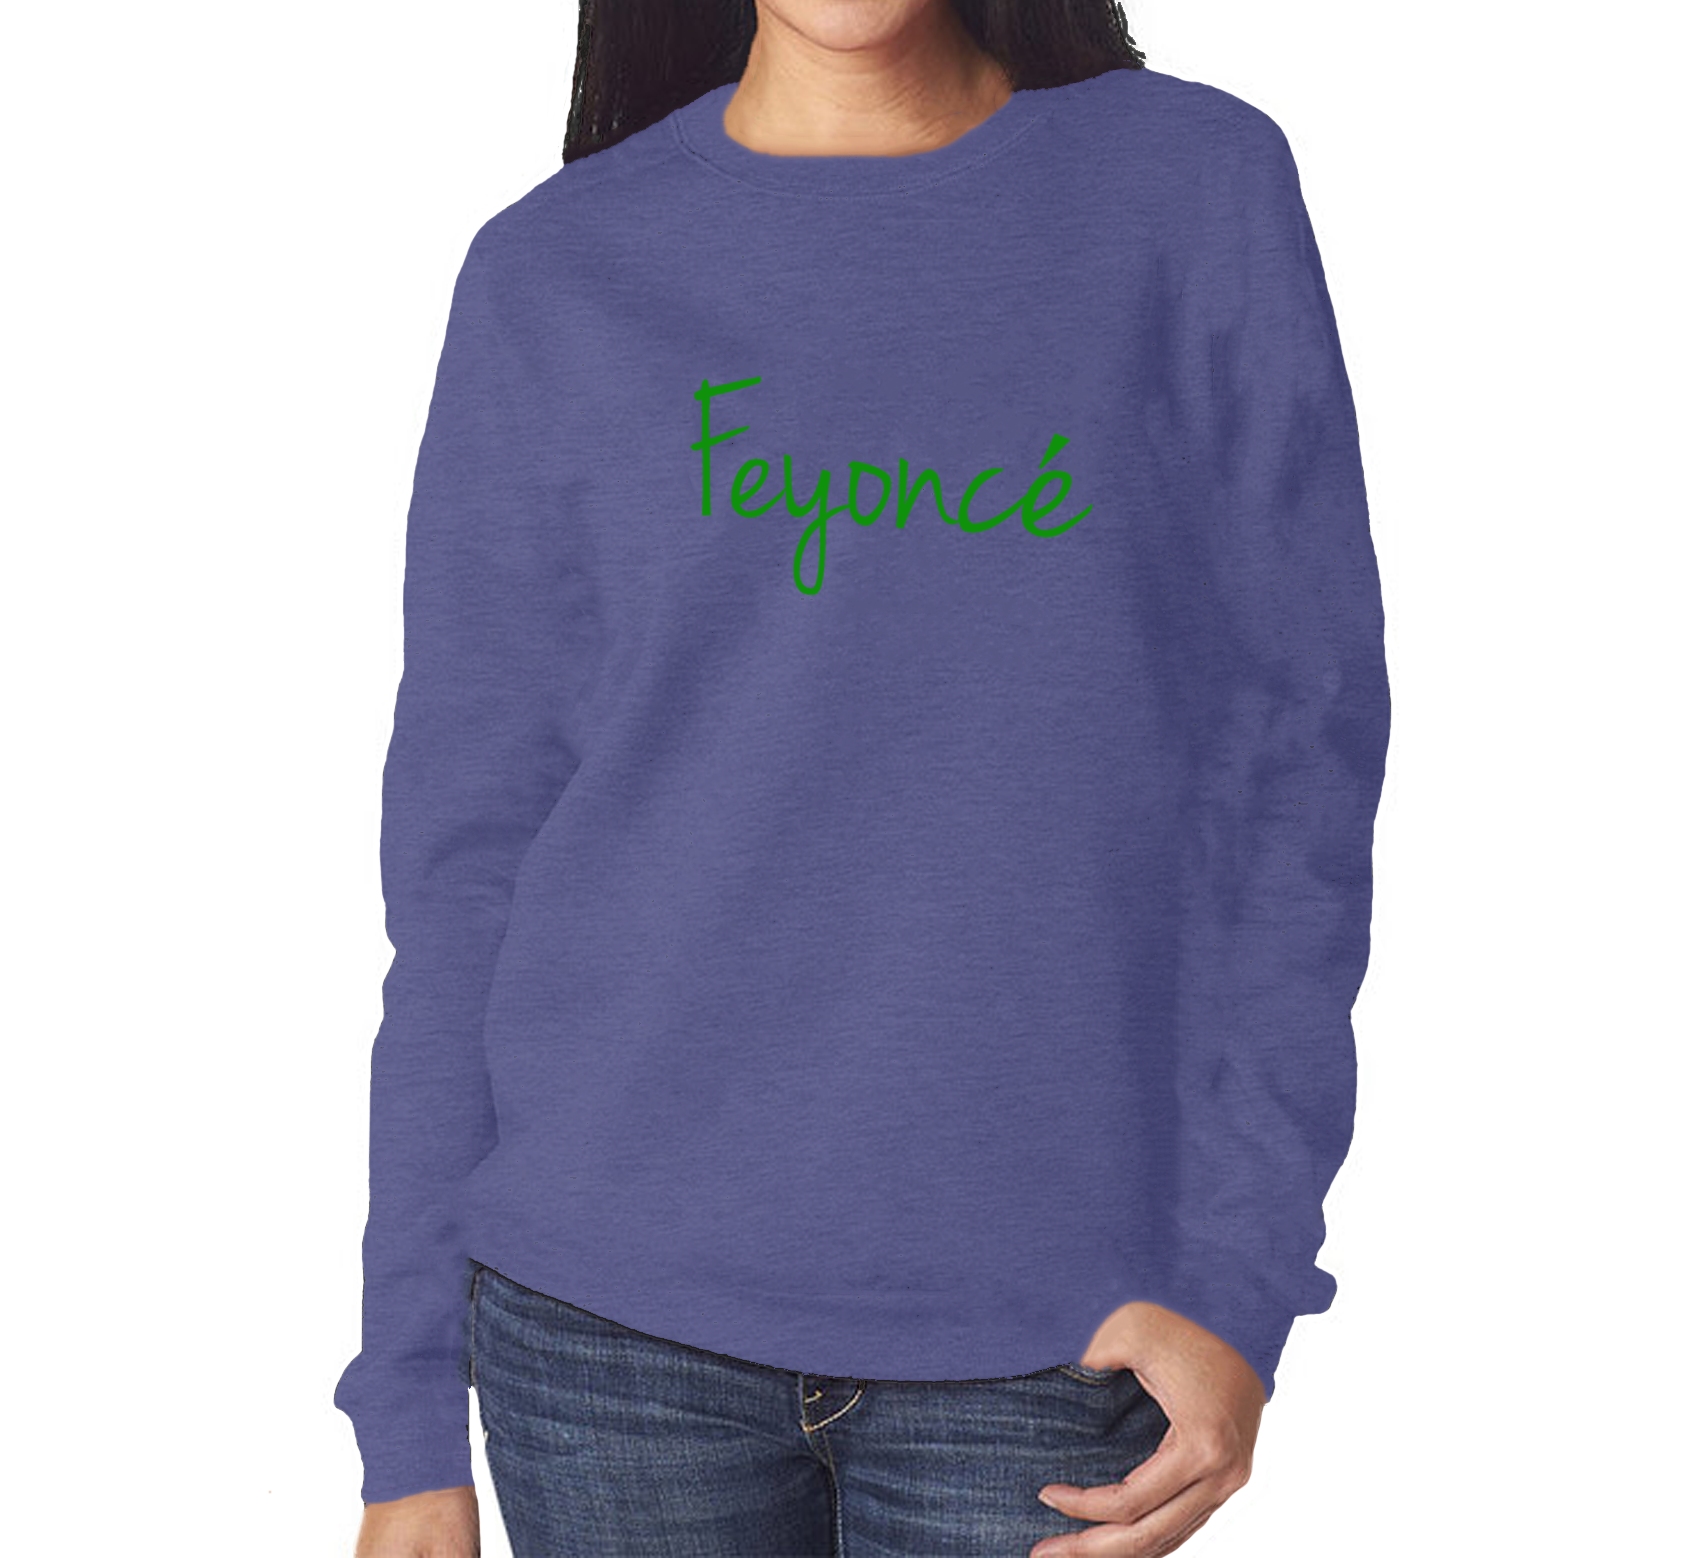 Feyonce Jumper Wedding Gift Bride Present Hen Party Christmas